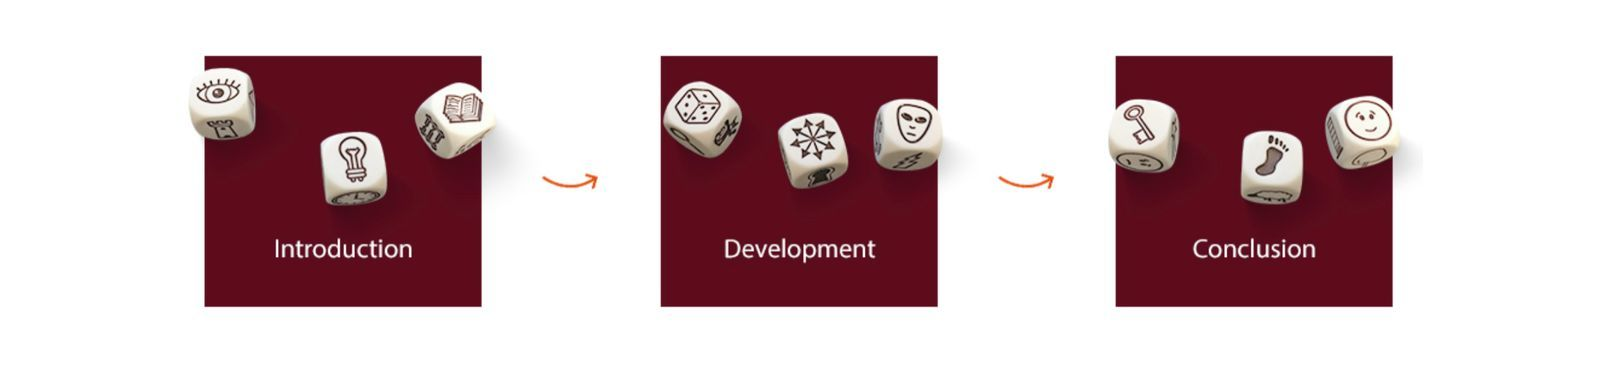 An example of what the dice look like and how to use them.